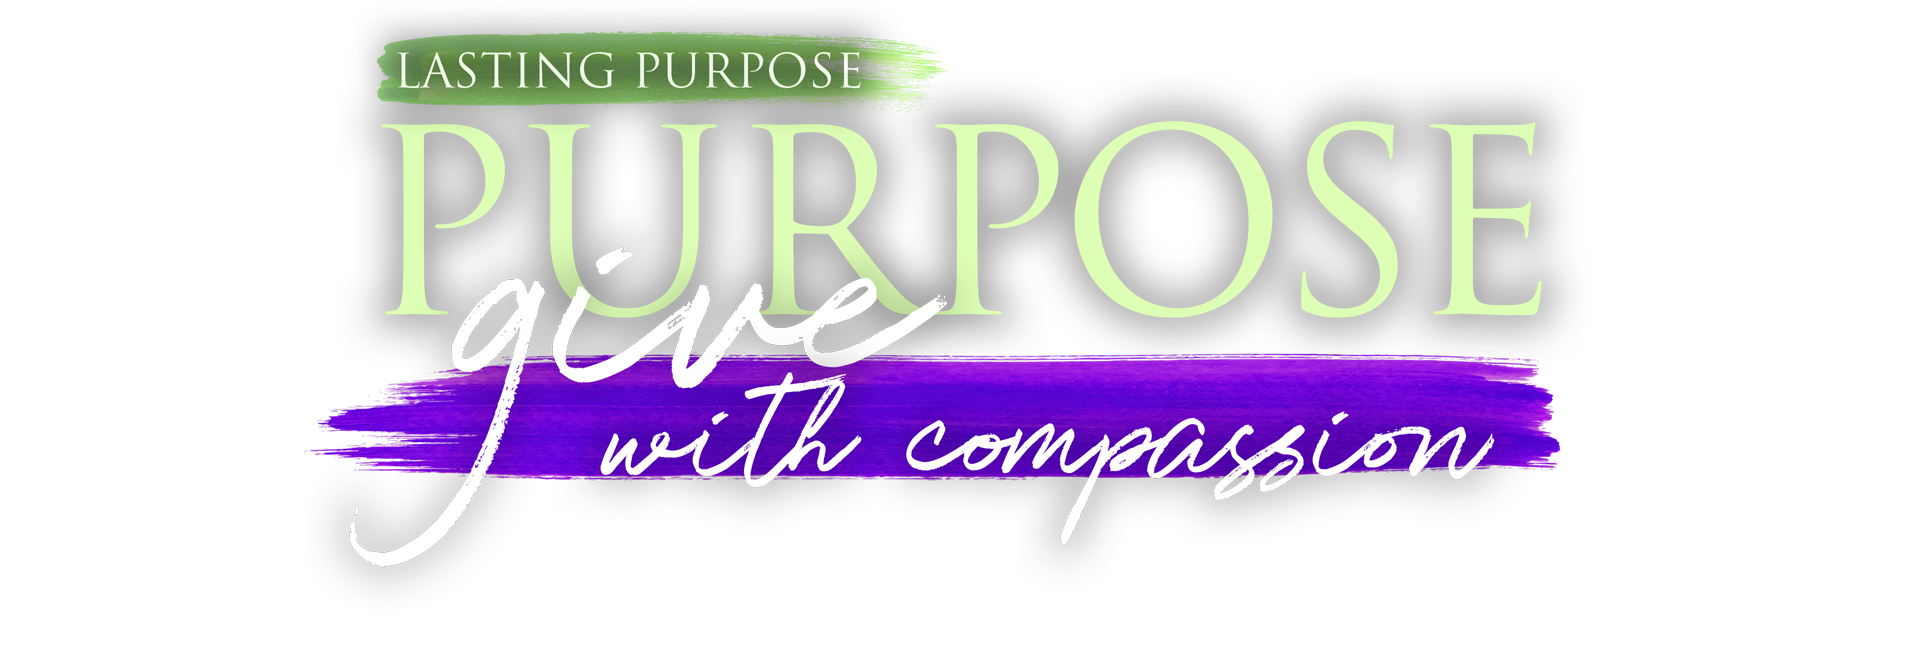 Lasting Purpose. To Give with Compassion.